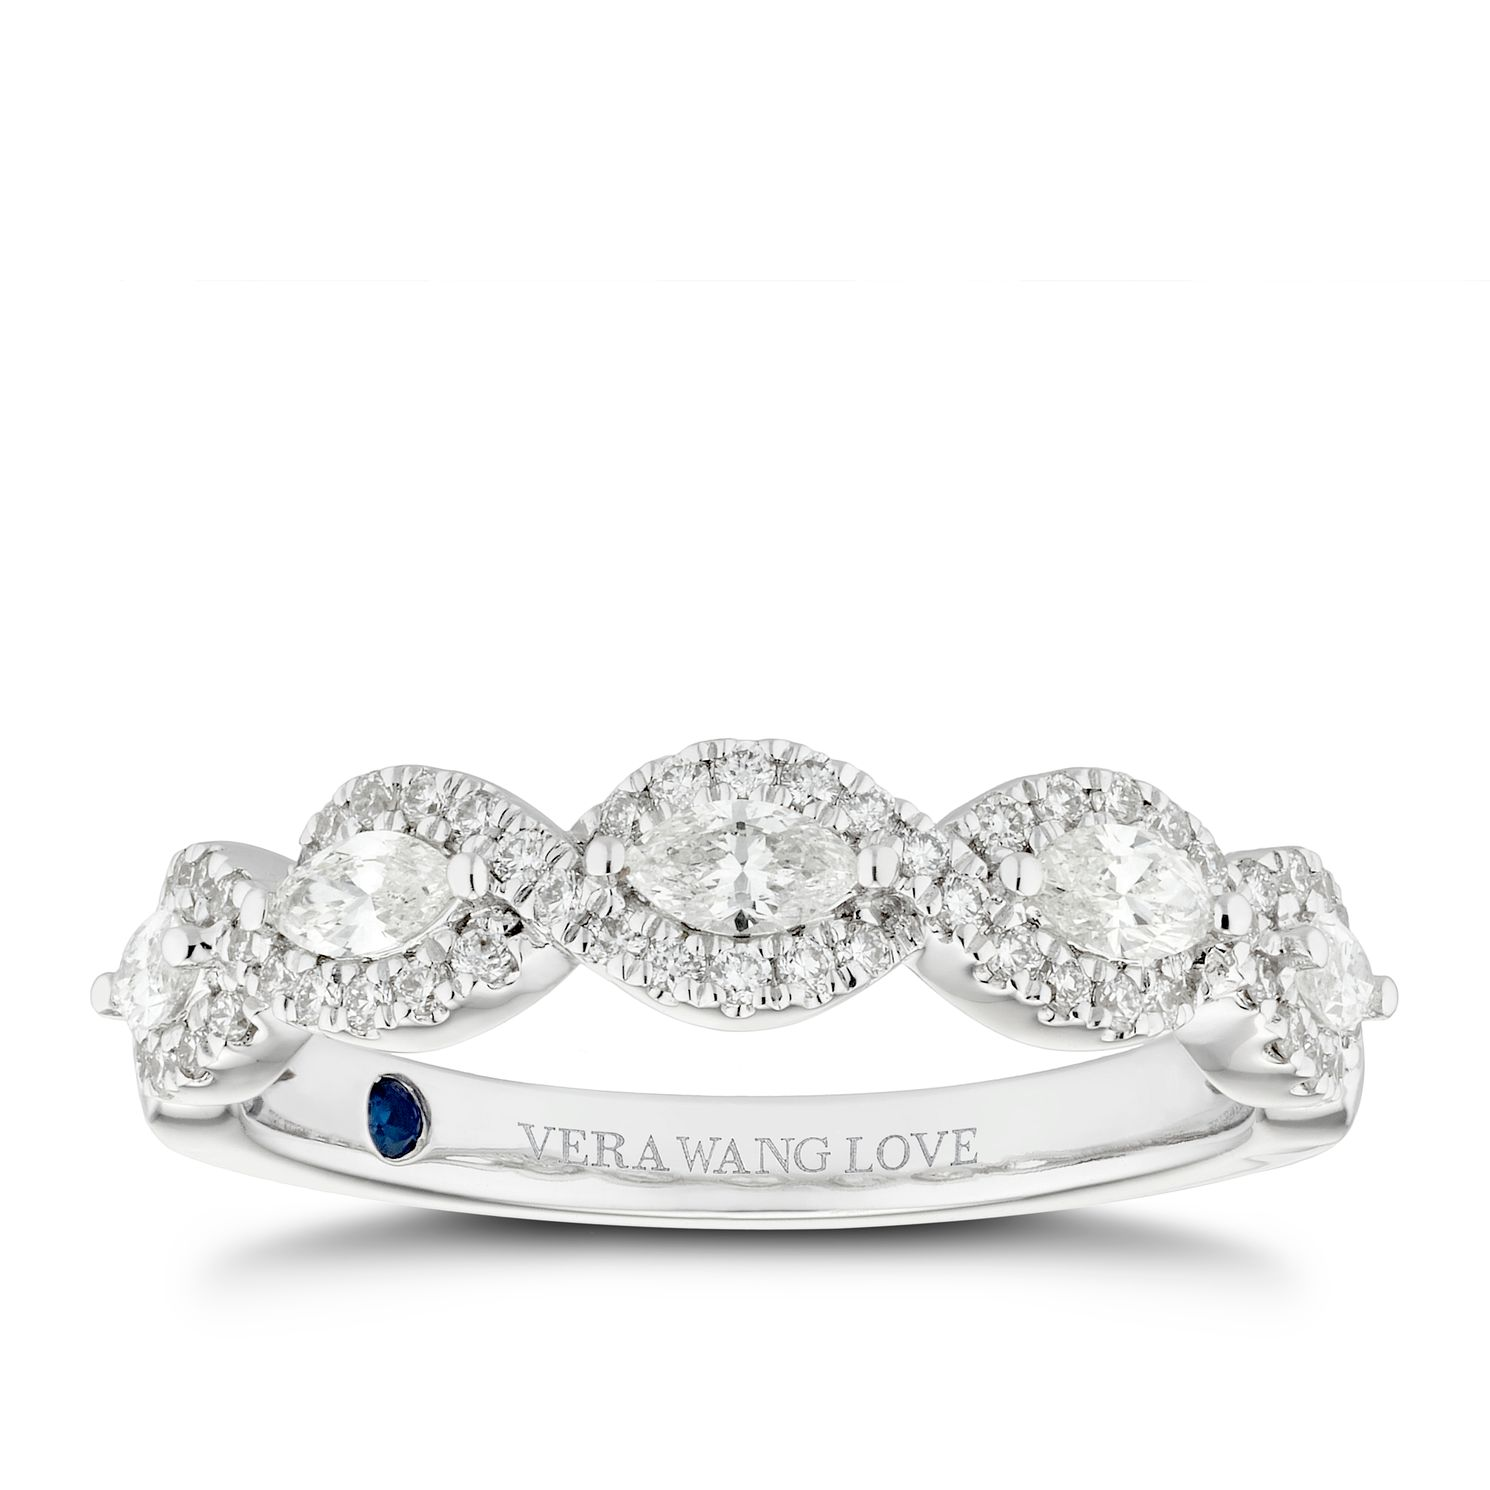 Vera Wang 18ct White Gold 0.45ct Diamond Eternity Ring - Product number 5313295